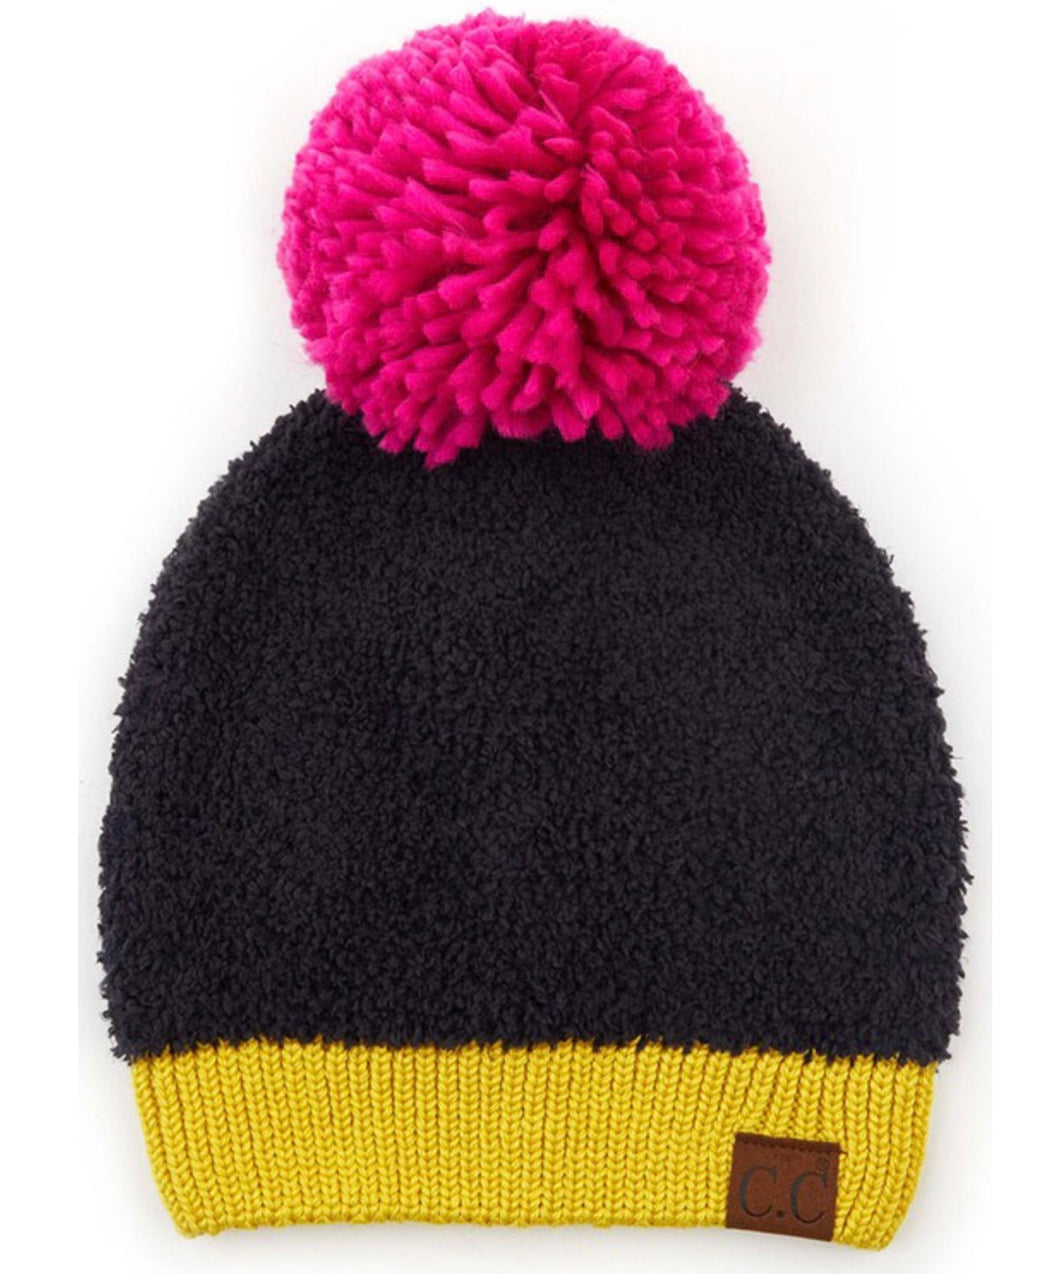 SALE! CC Knit Sherpa Beanie with Contrasting Color